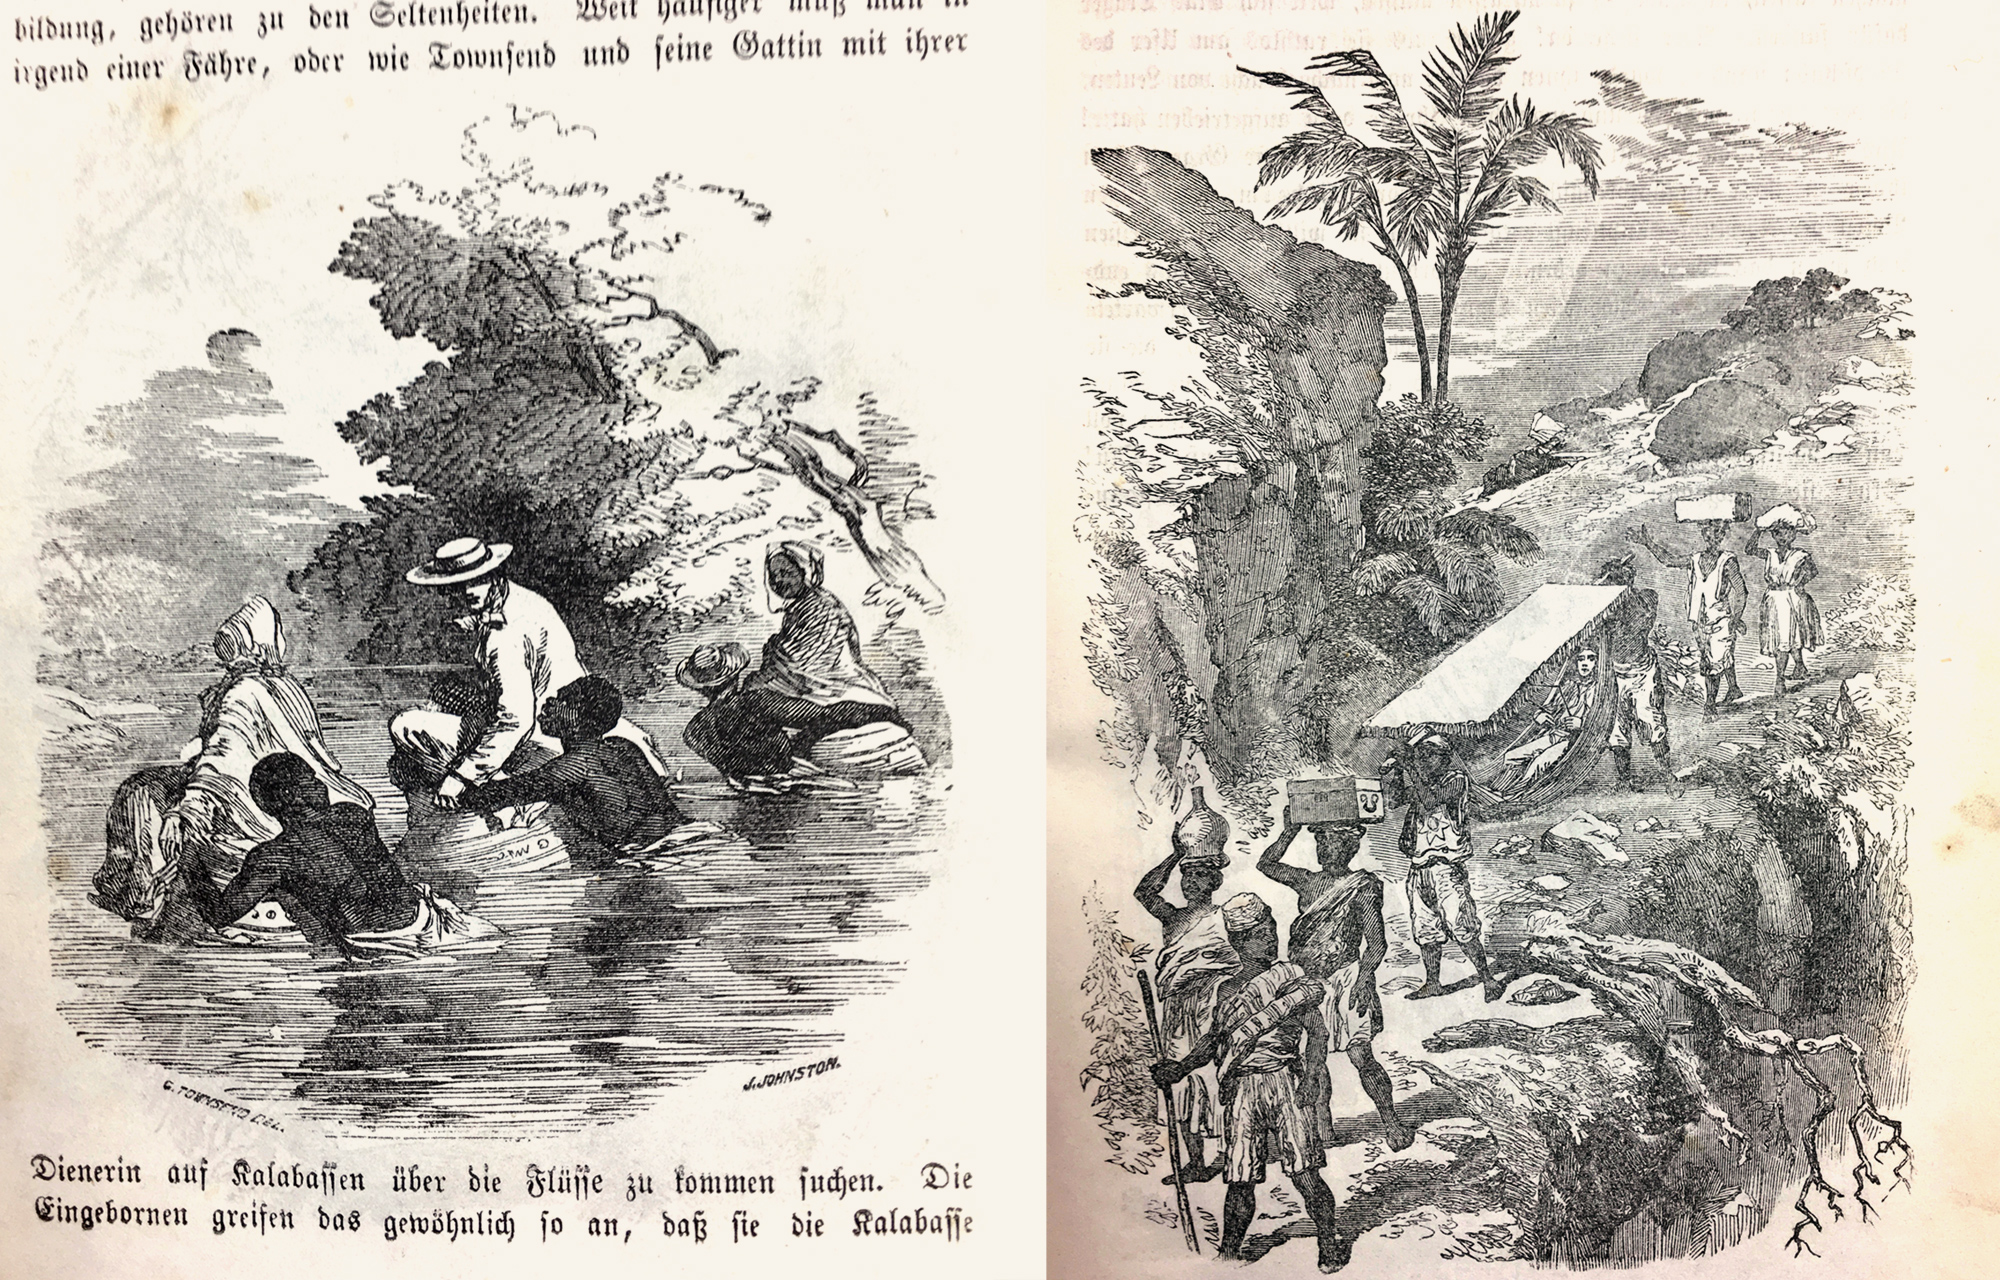 """While the text tells us about the dangers of traveling through Yorùbáland, the illustrations give us a more comfortable impression. On the left is the scene of crossing a river by the missionaries sitting in huge calabashes, on the right the typical image of a white explorer been carried by """"his freed slaves"""" in a hammock under a sun shield."""